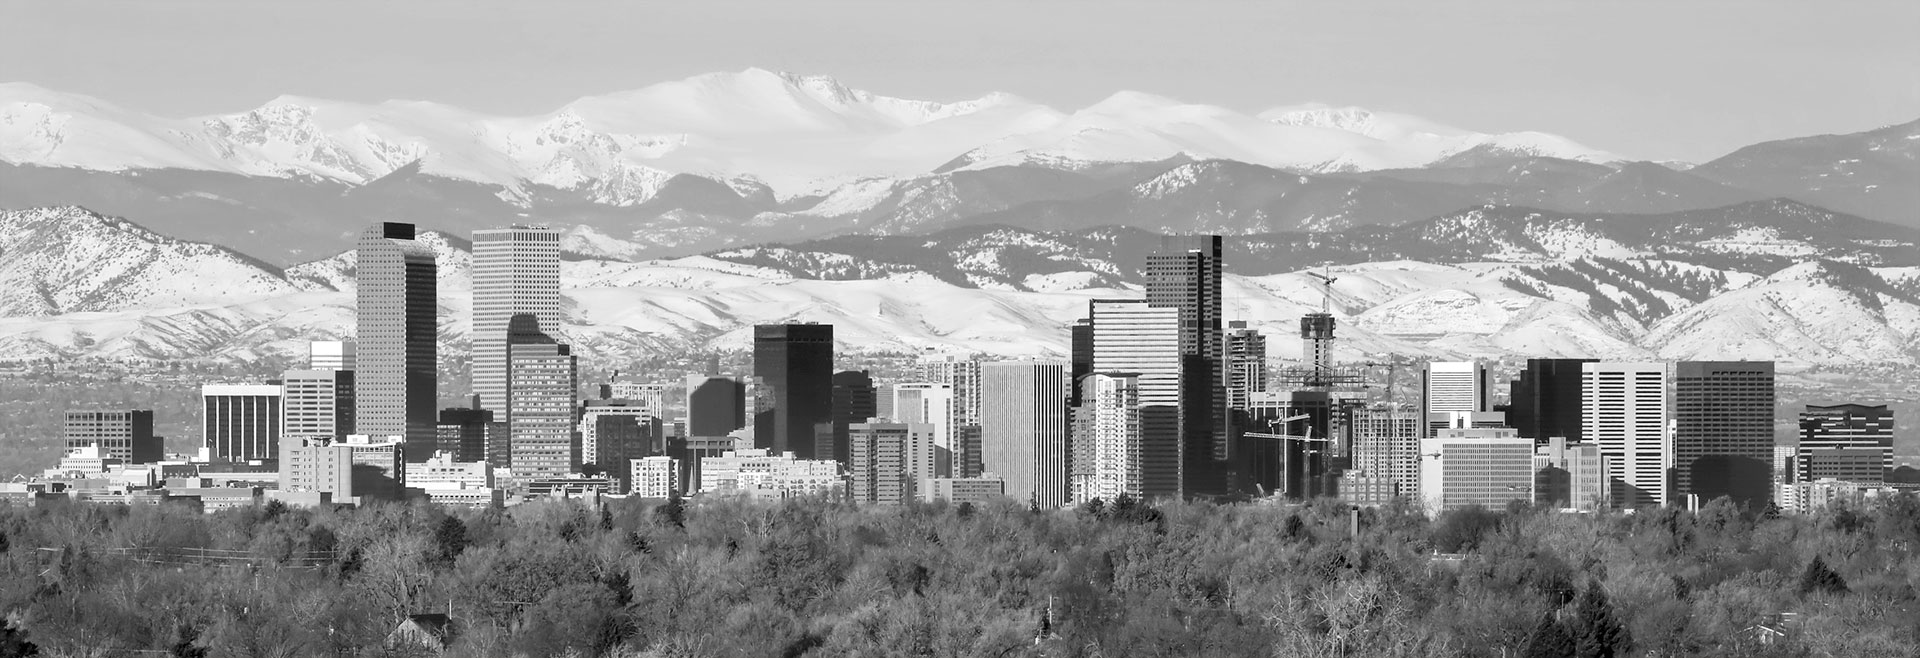 Denver Criminal Defense Attorney, Denver DUI Attorney and Denver Car Accident Attorney denver skyline bw - Home